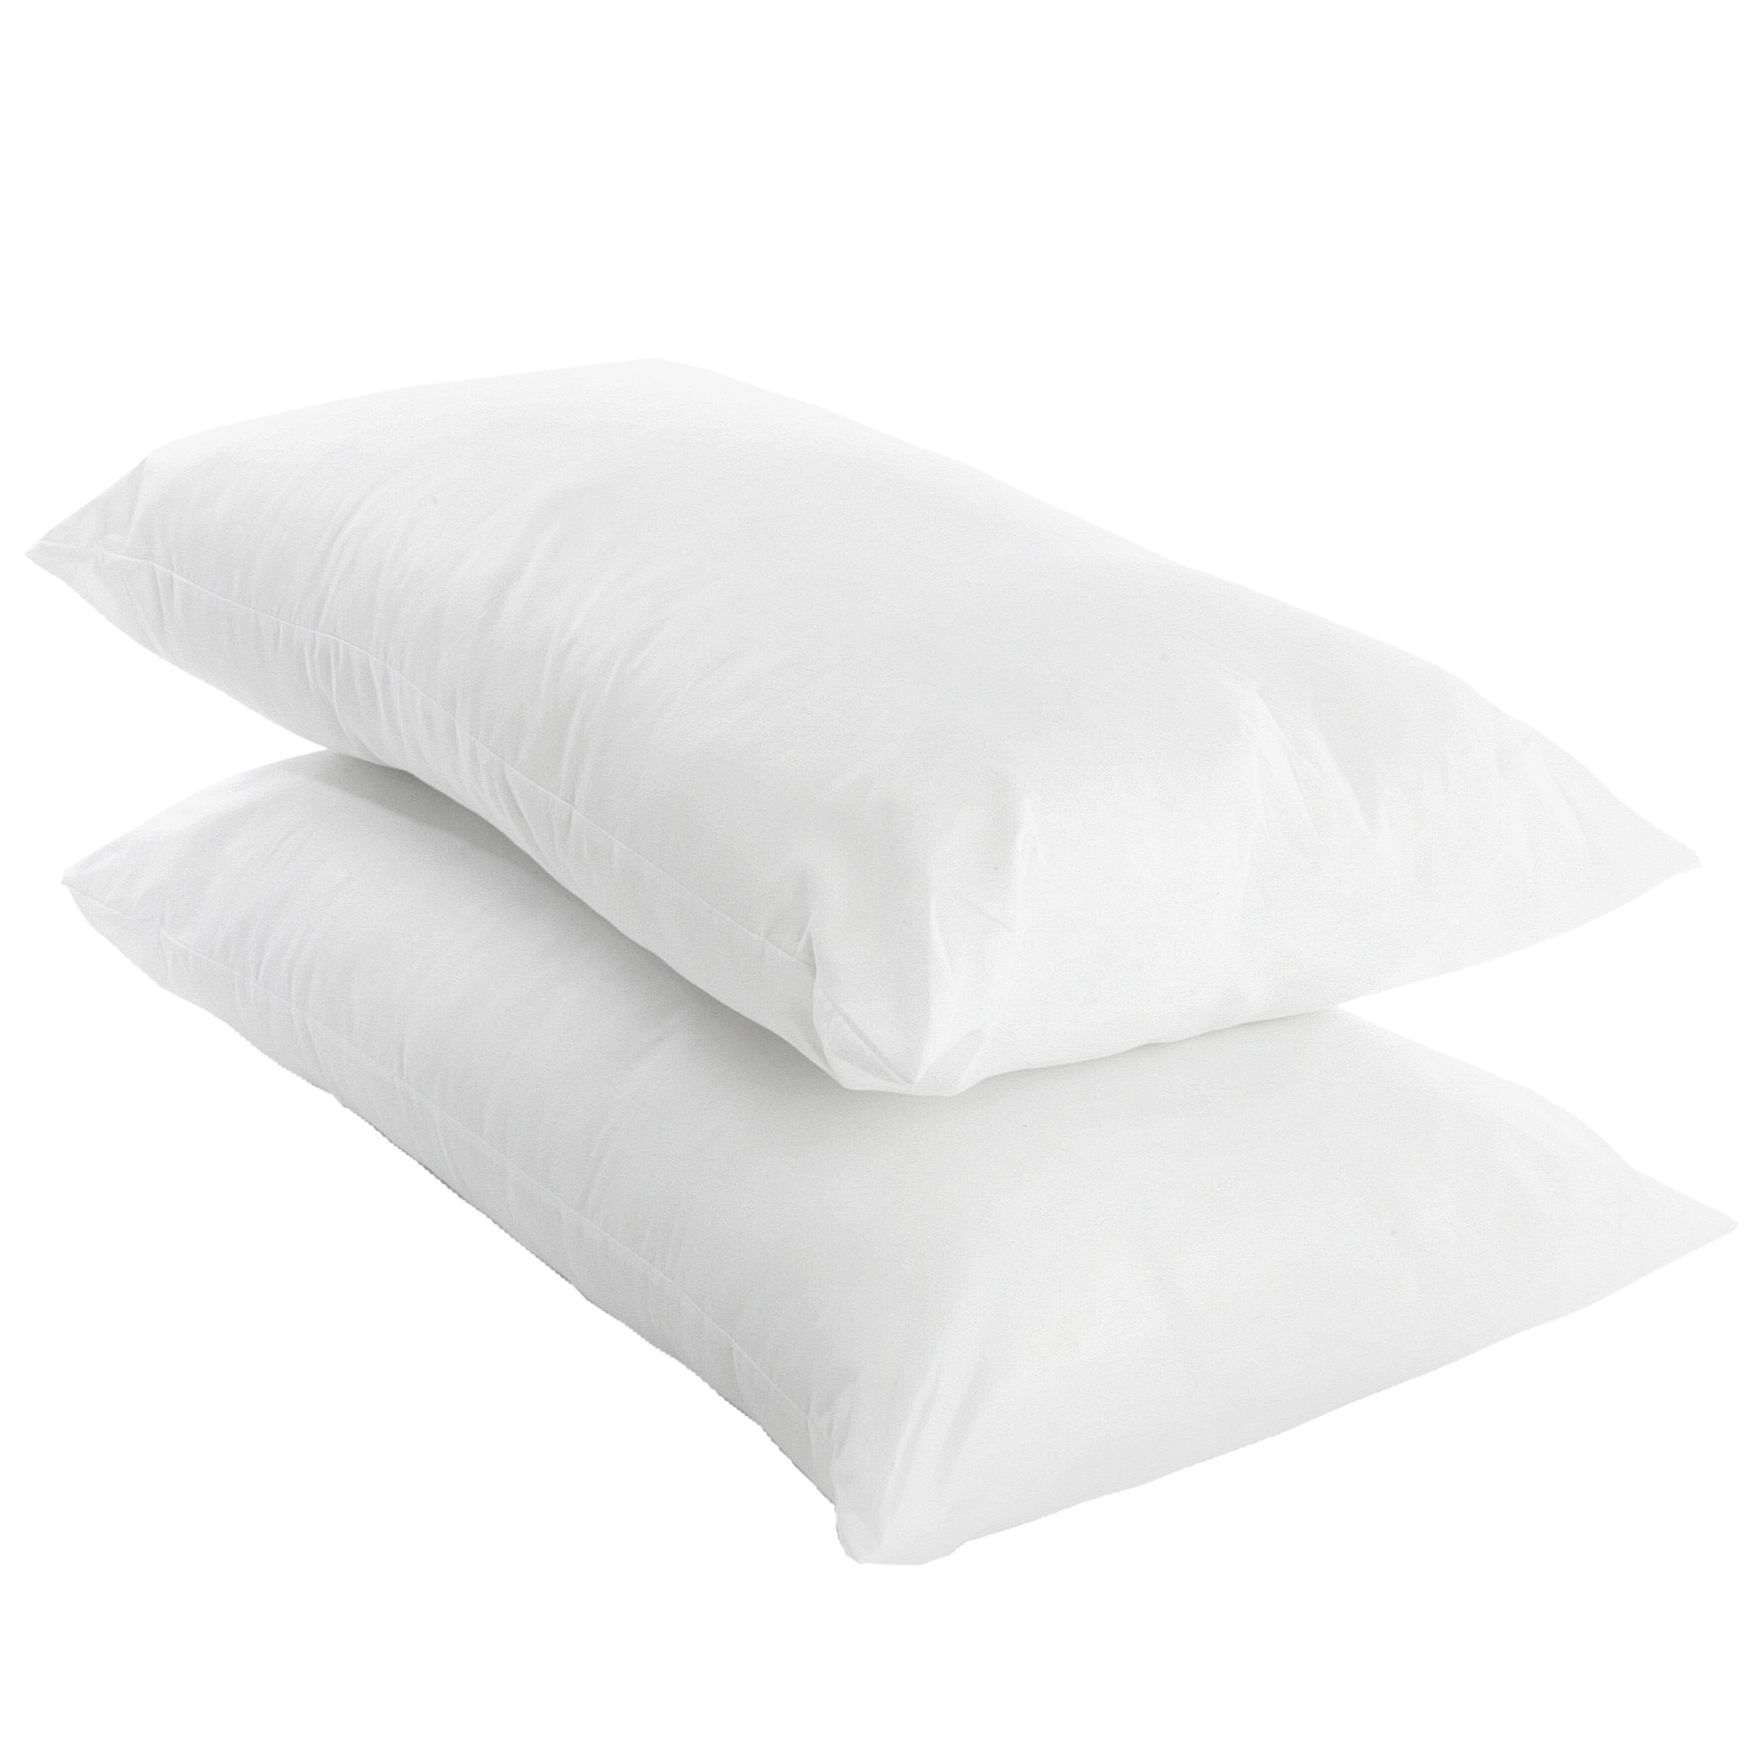 Silentnight 'just Like Down' Pillow, Pack Of 2